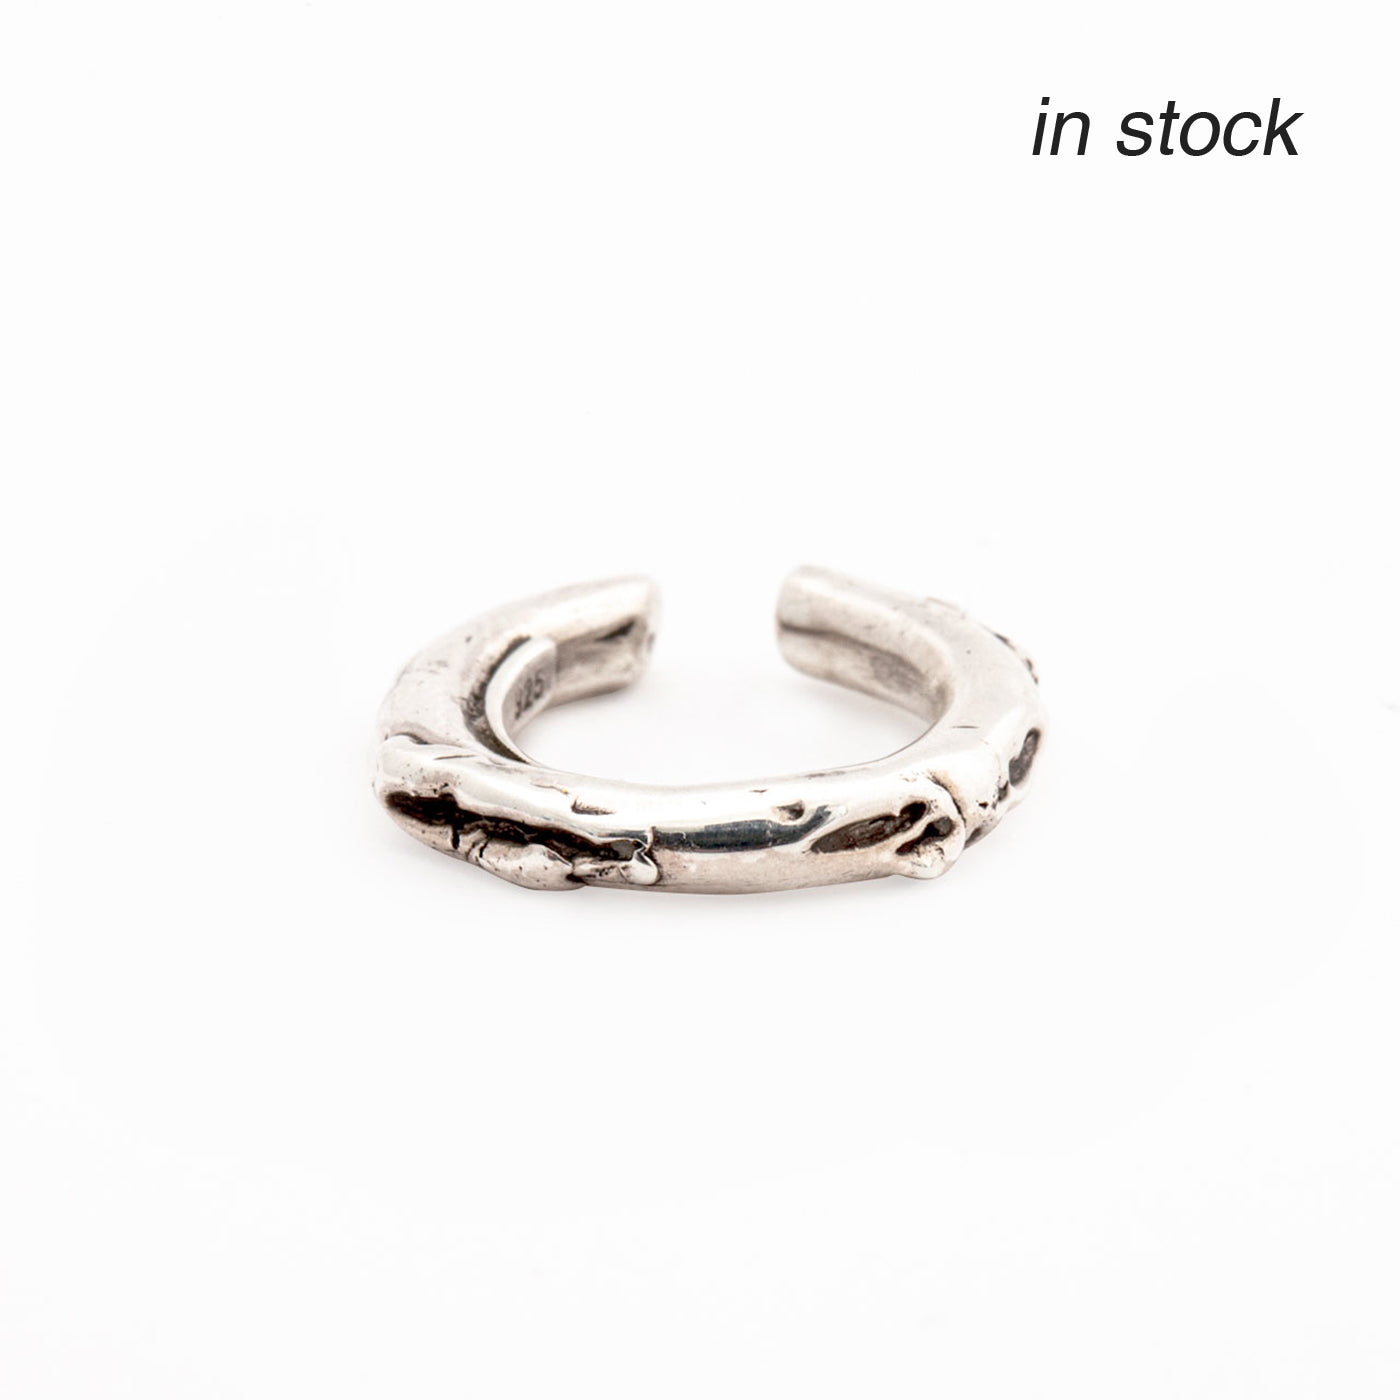 ear cuff cenote silver product view innan jewellery in stock